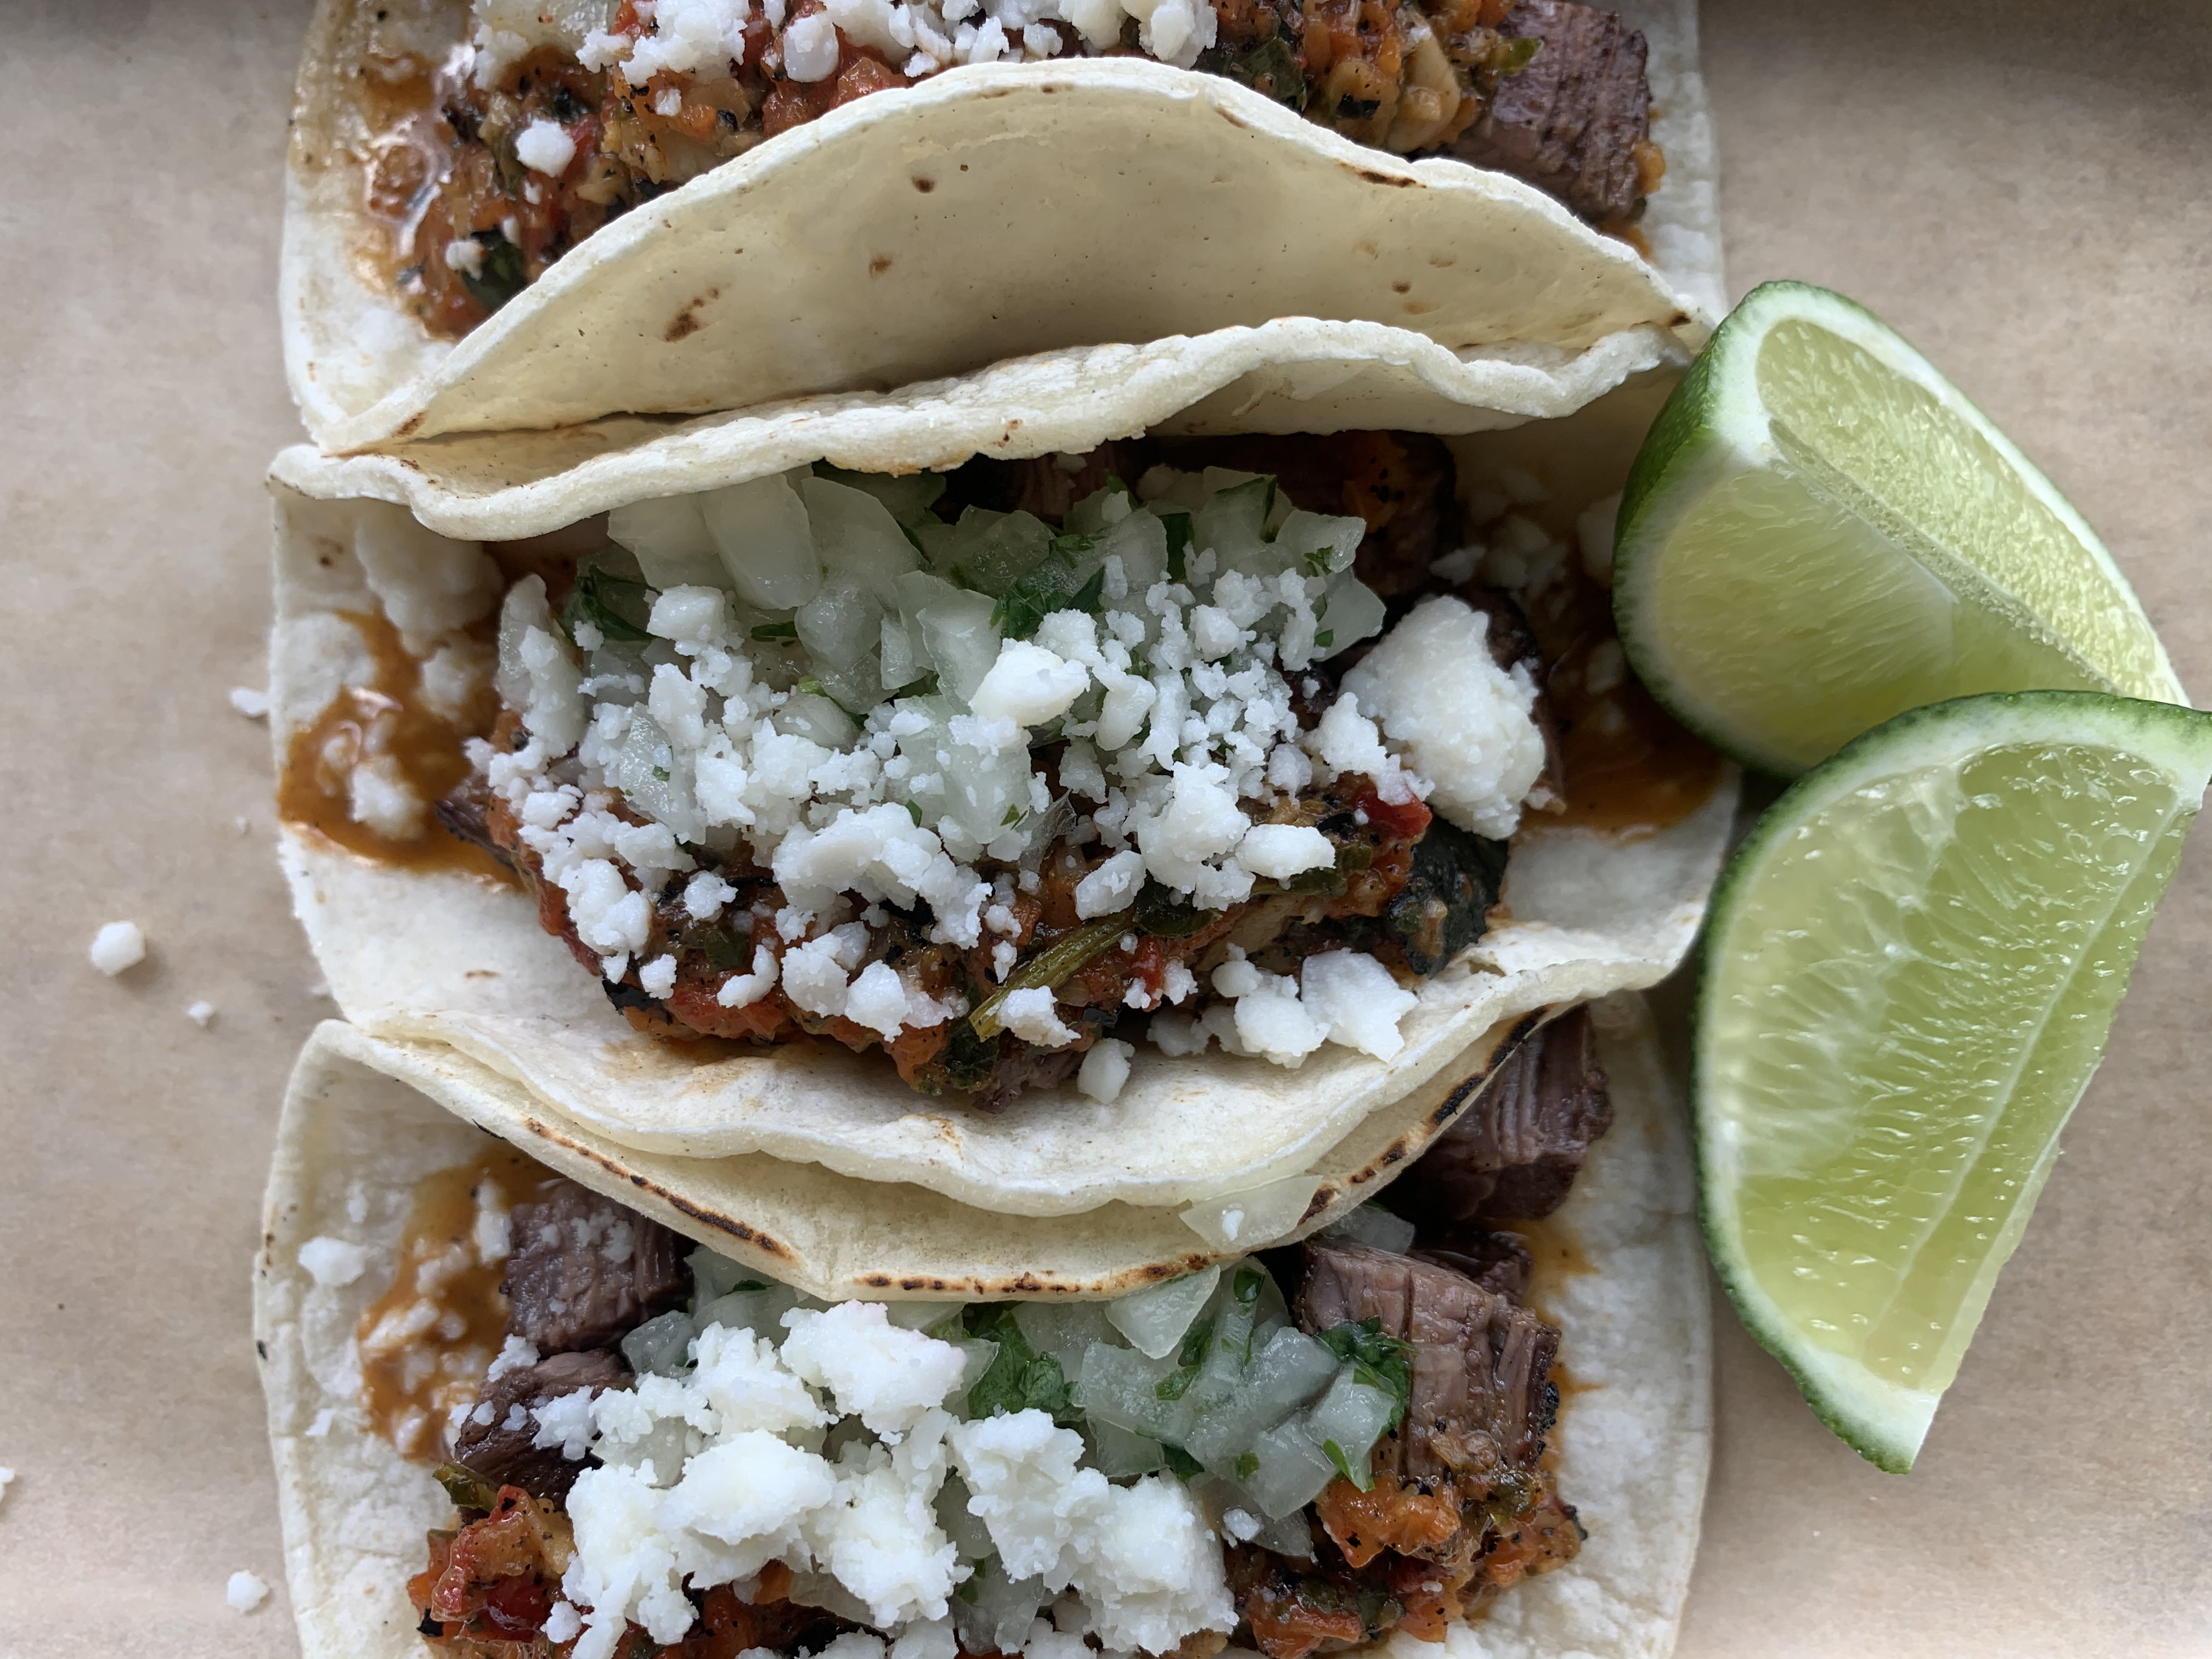 Three tacos, sprinkled with crumbles of cotija cheese, sit on a plate, adjacent to slices of lime